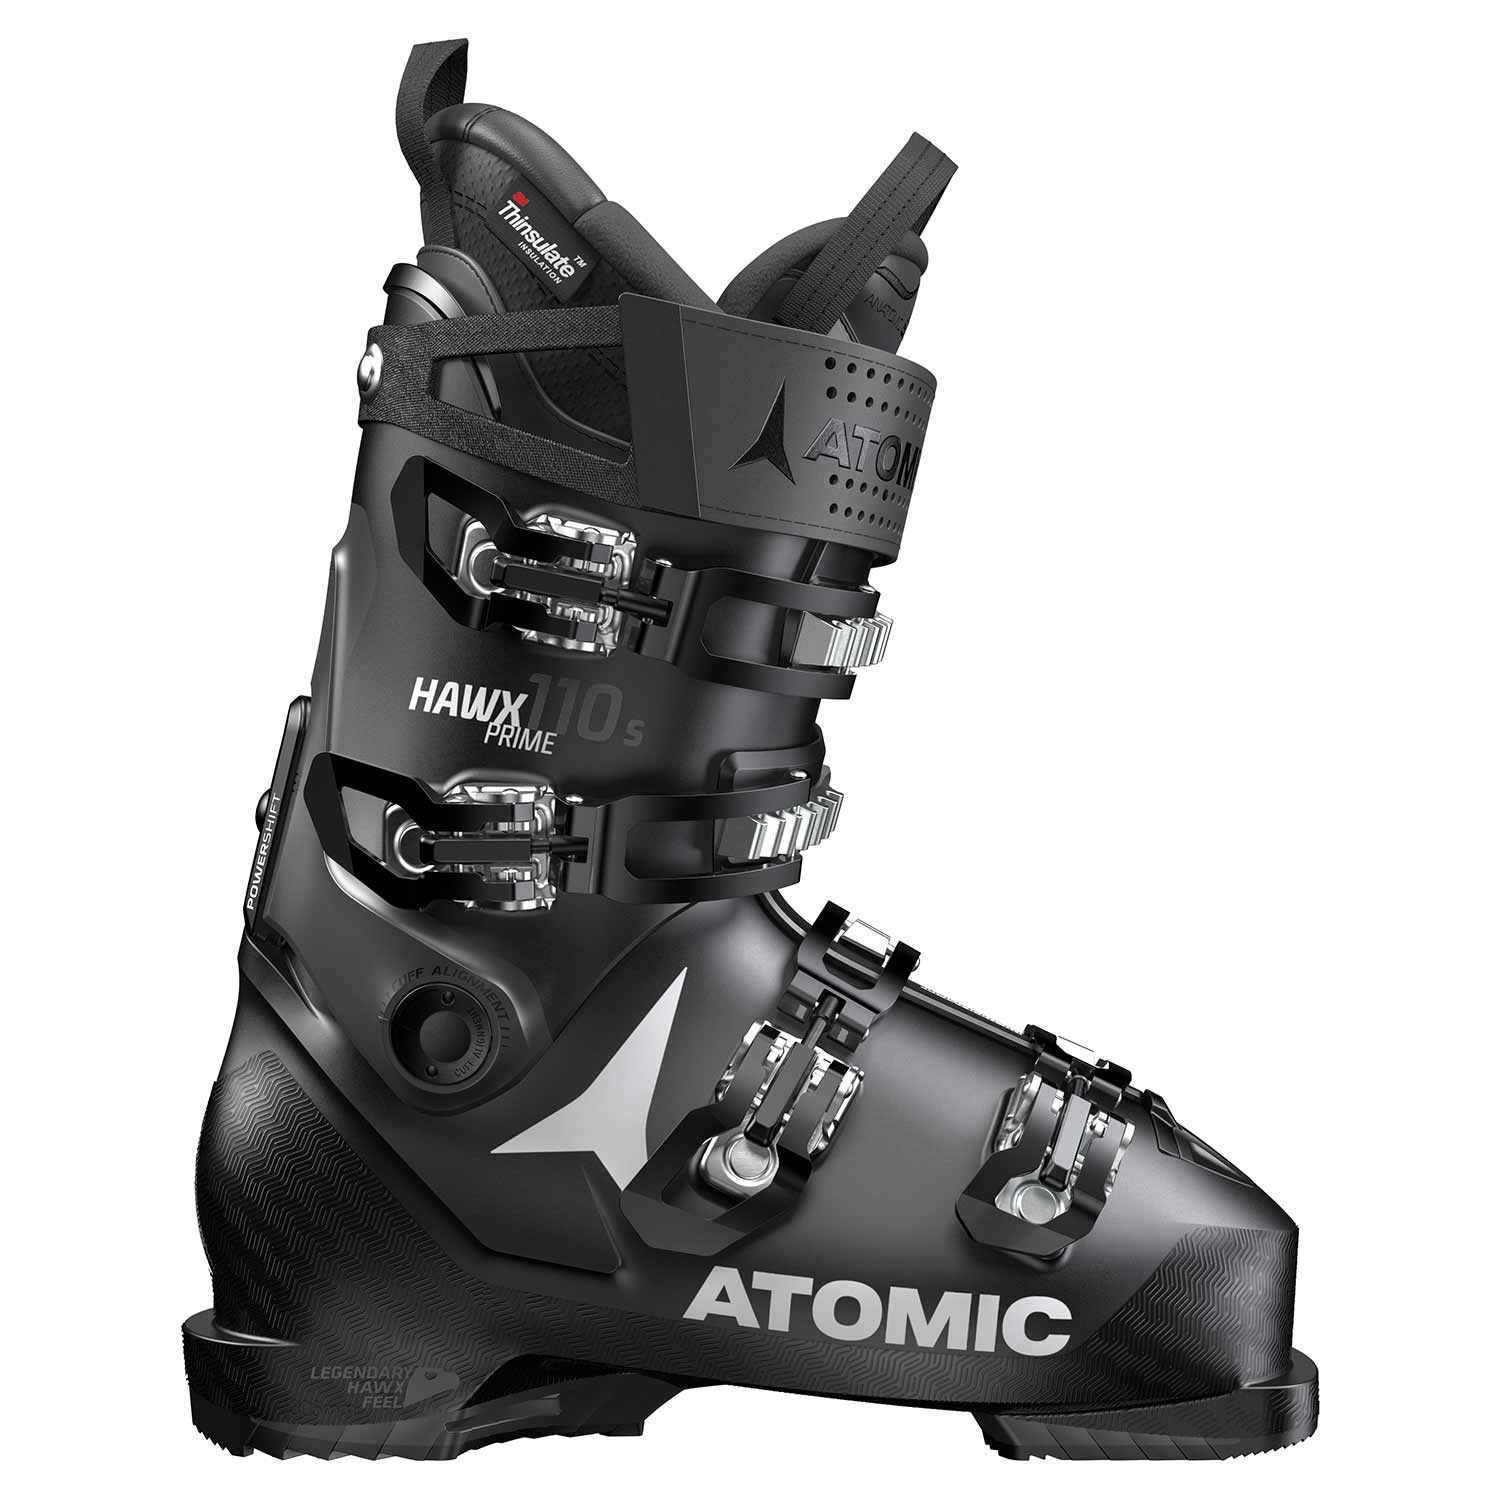 Atomic Hawx Prime 110 S Ski Boot Black/Anthracite 2020